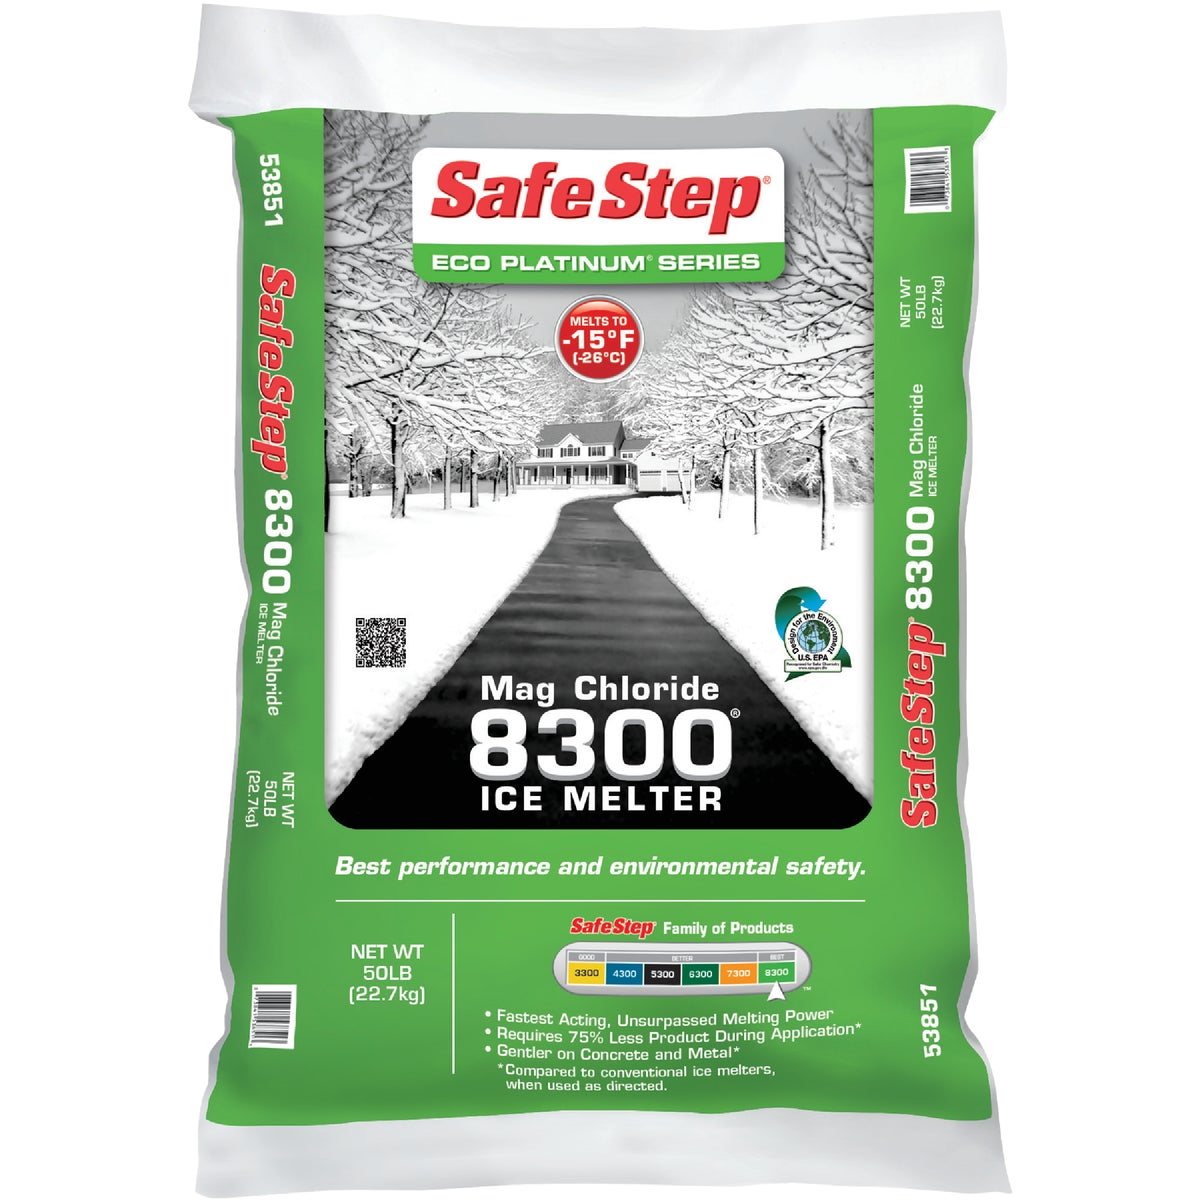 50LB MAG CHLORIDE MELTER - 53851 by North American Salt